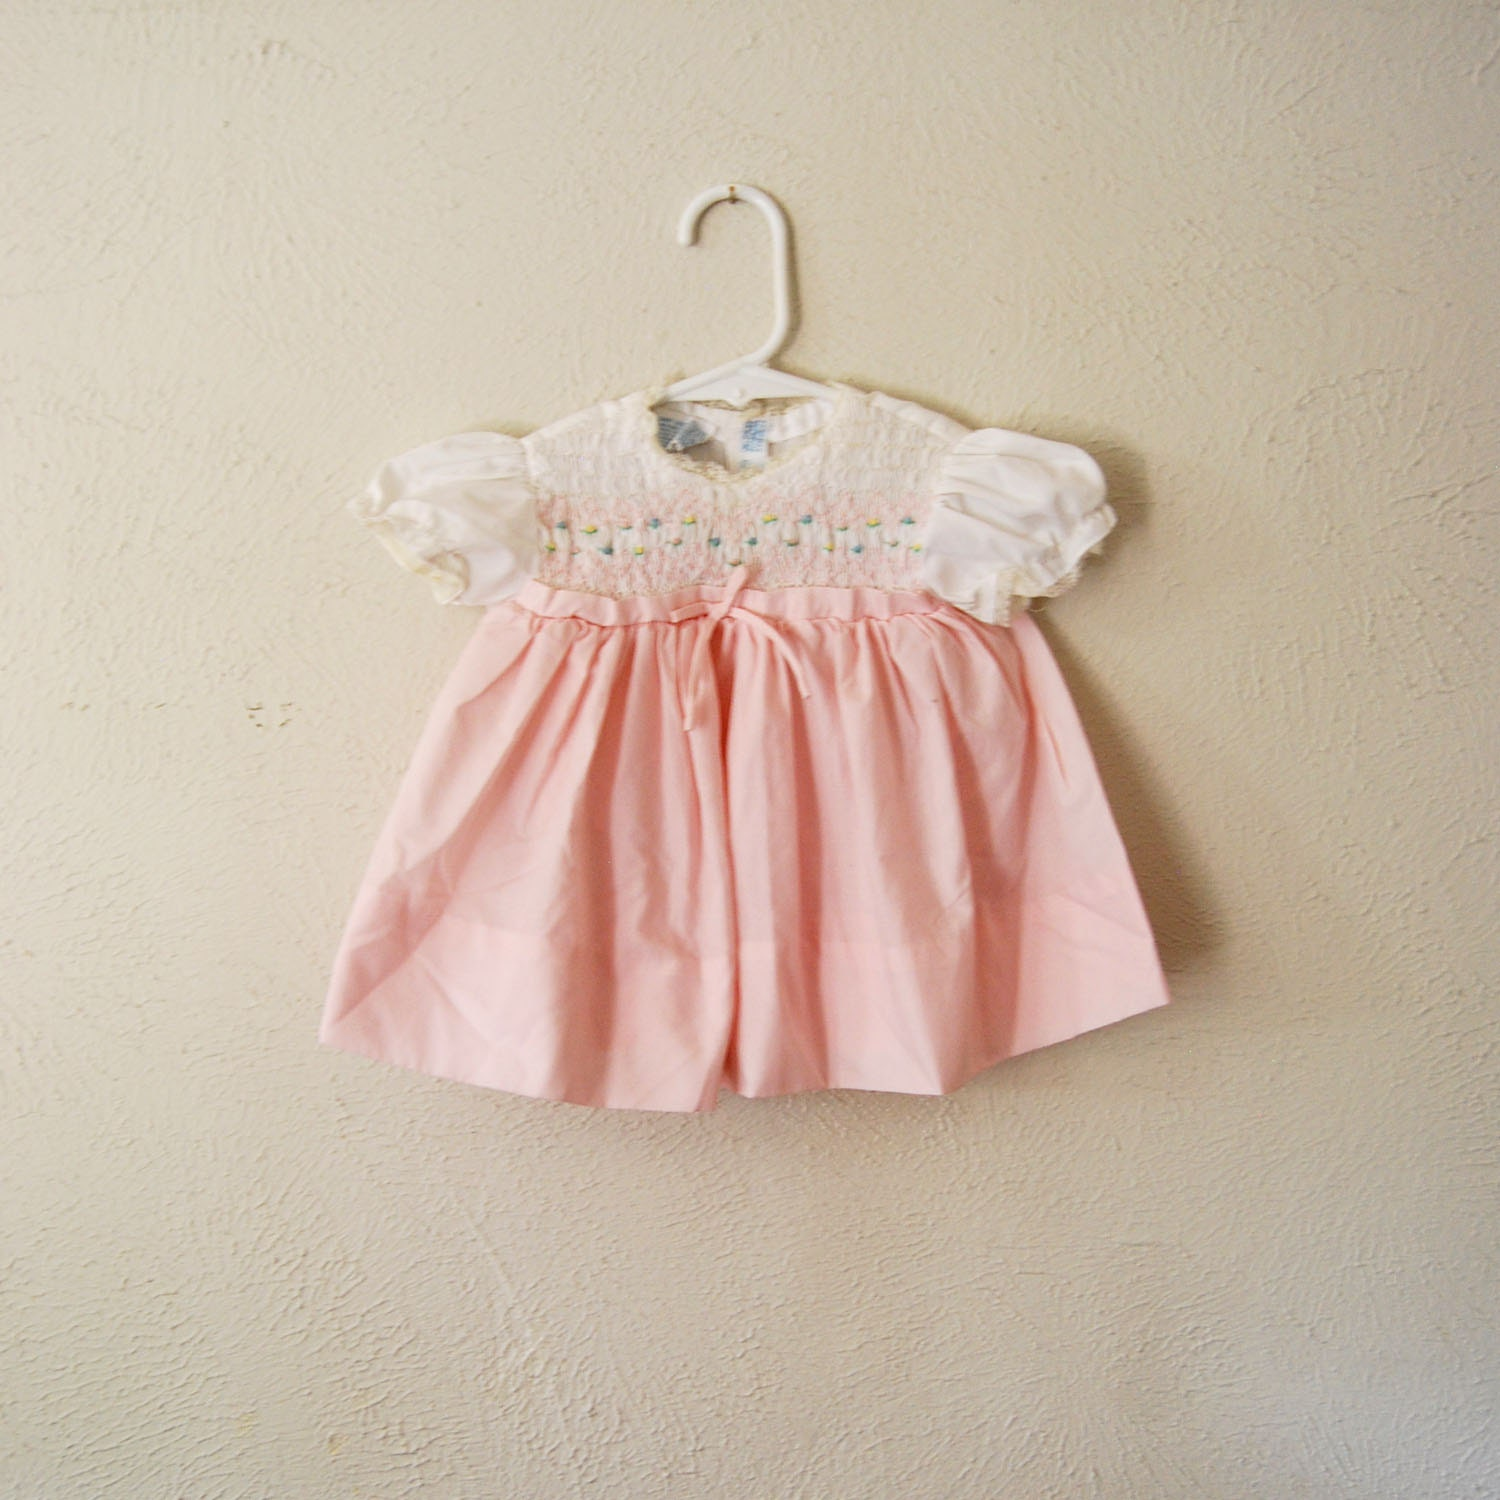 vintage baby girl pink and white smocked dress - olliesvintage